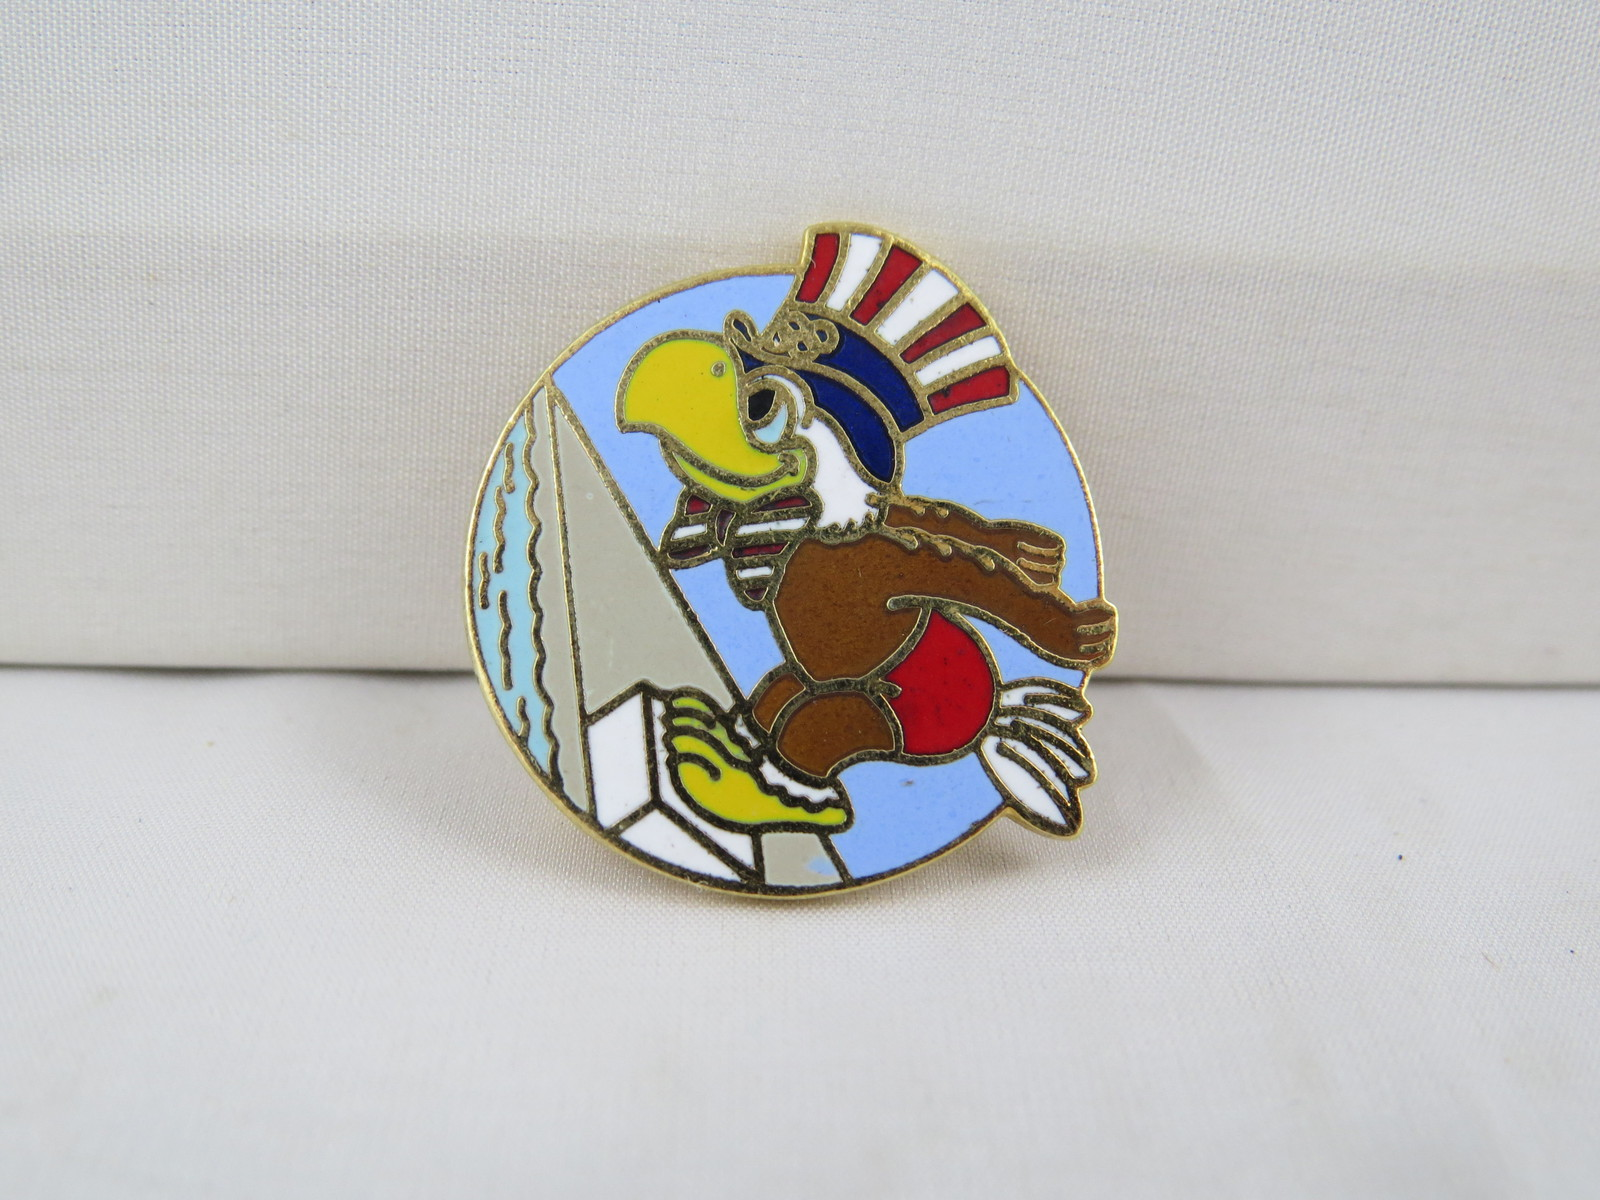 Primary image for 1984 Summer Olympic Games Pin - Swimming Event - Featuring Sam the Mascot